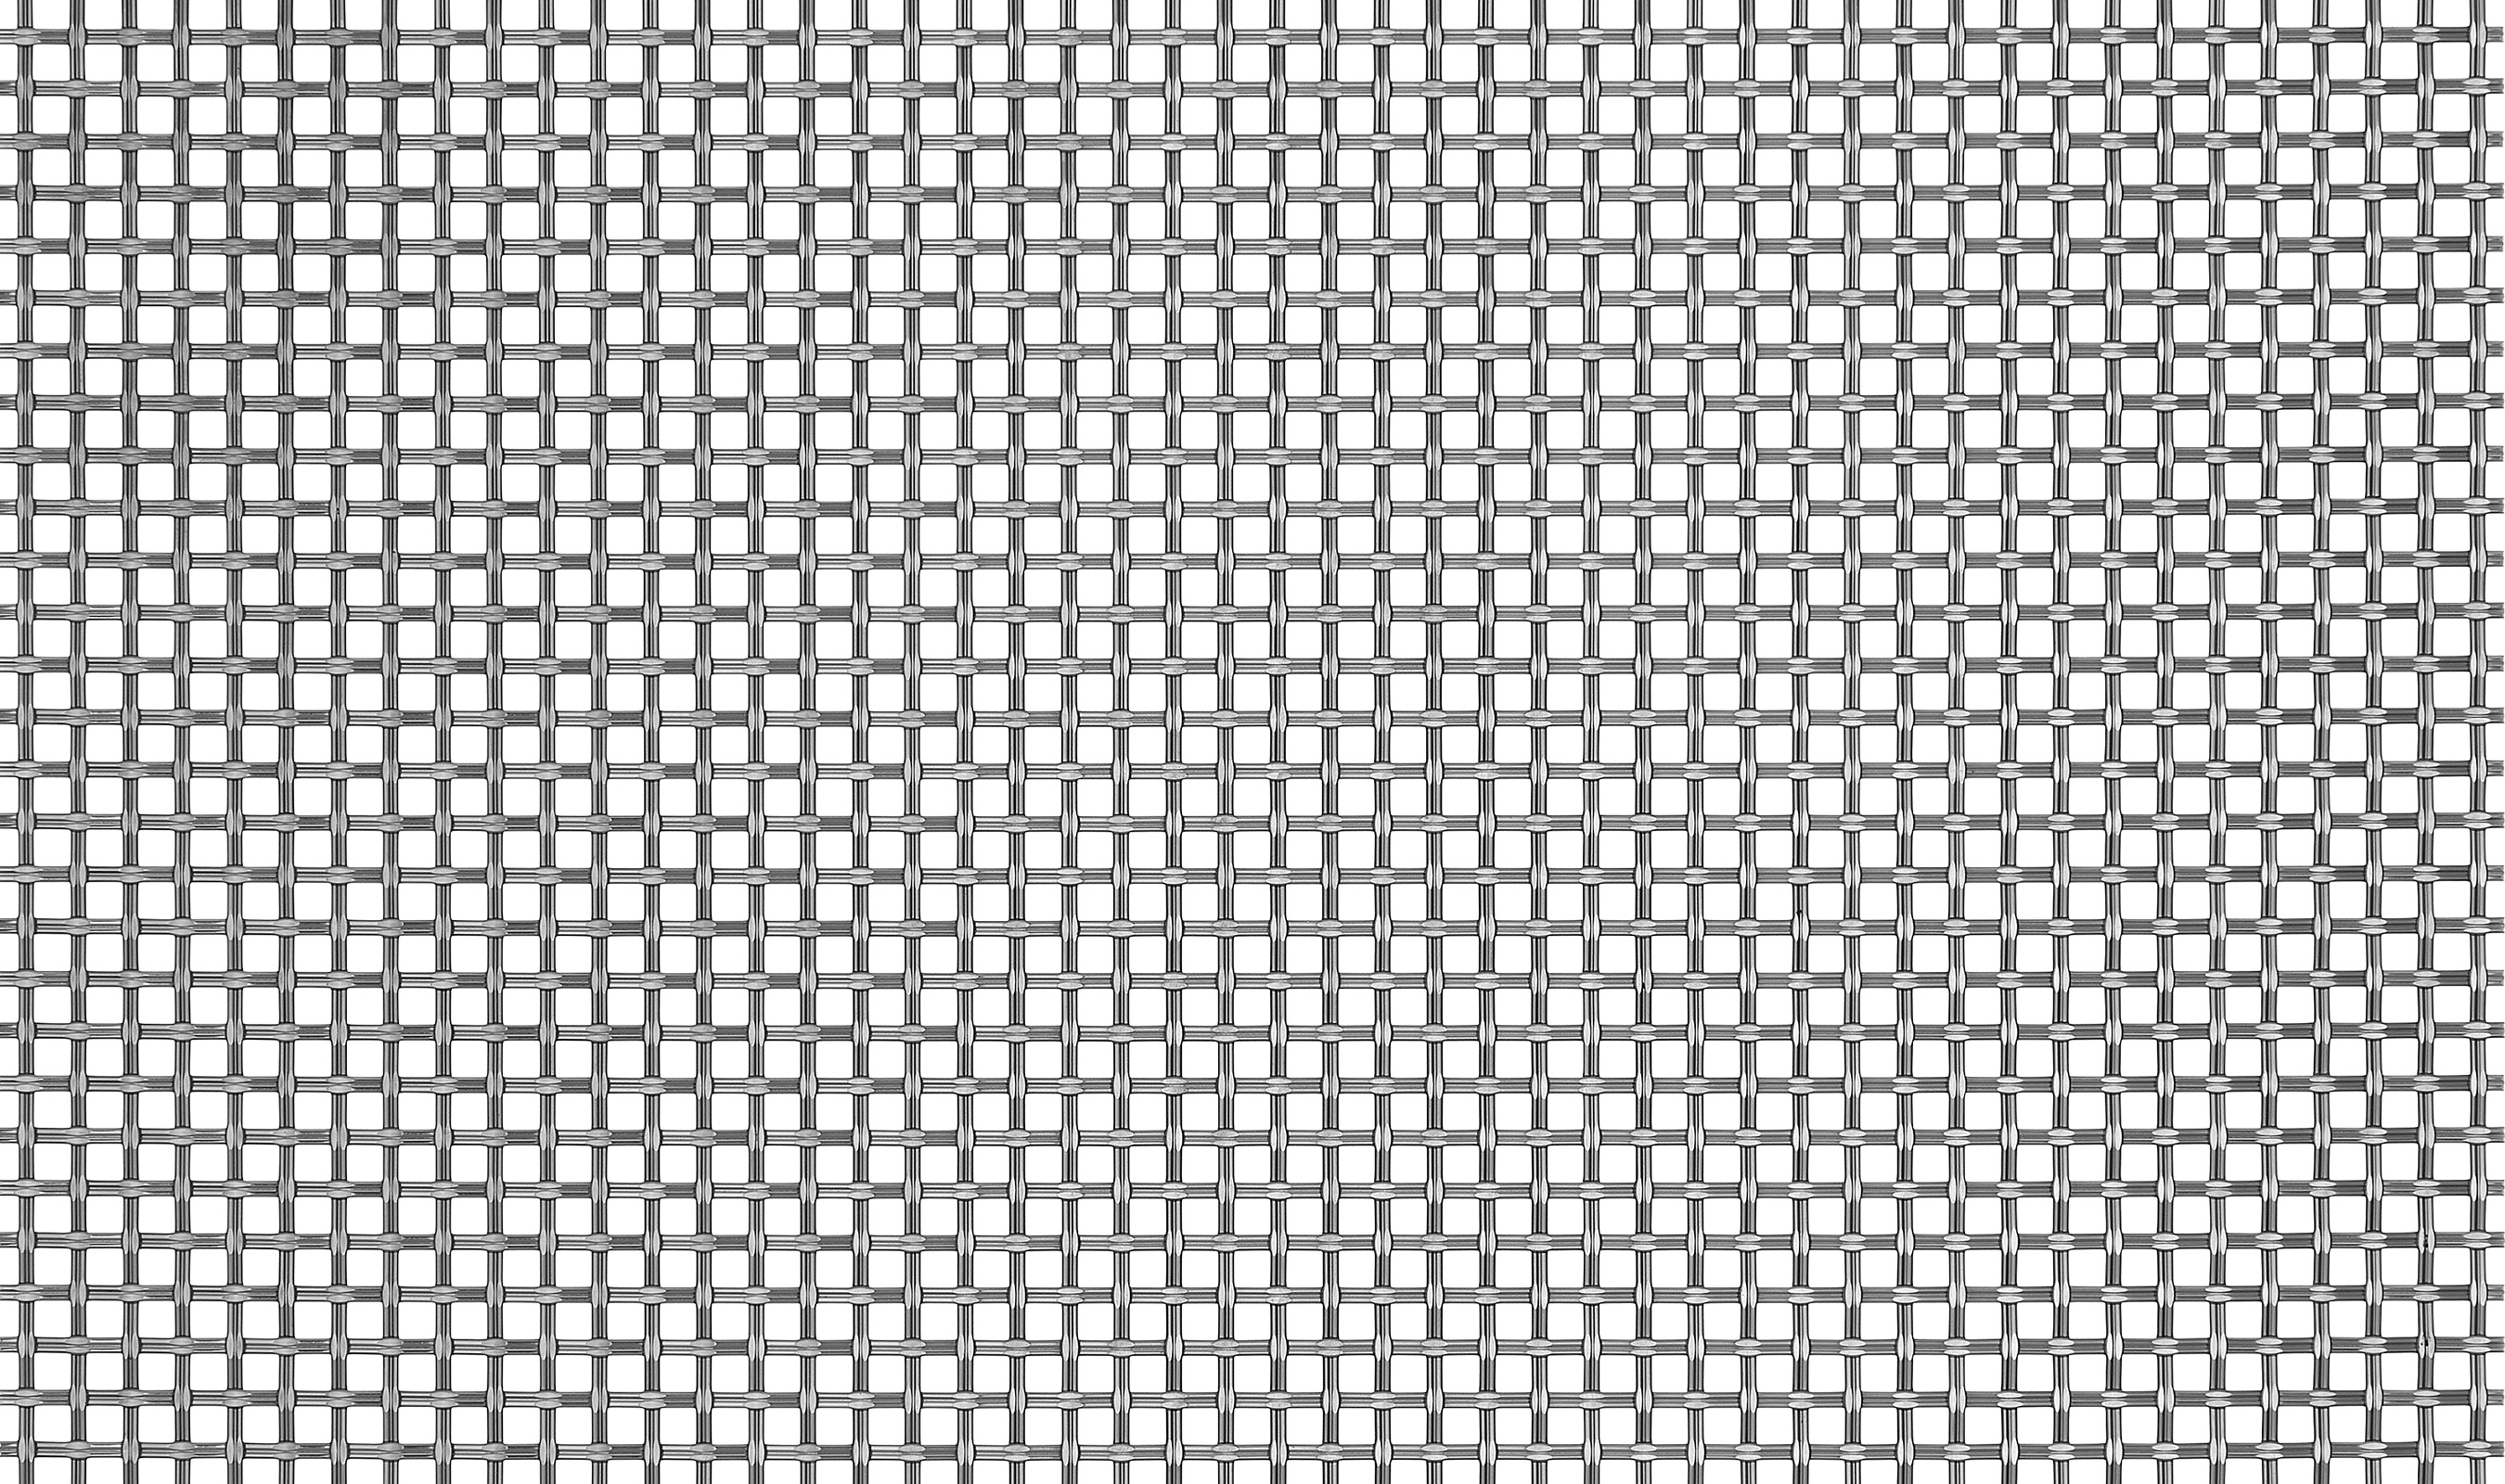 S-46 woven wire mesh in stainless steel.